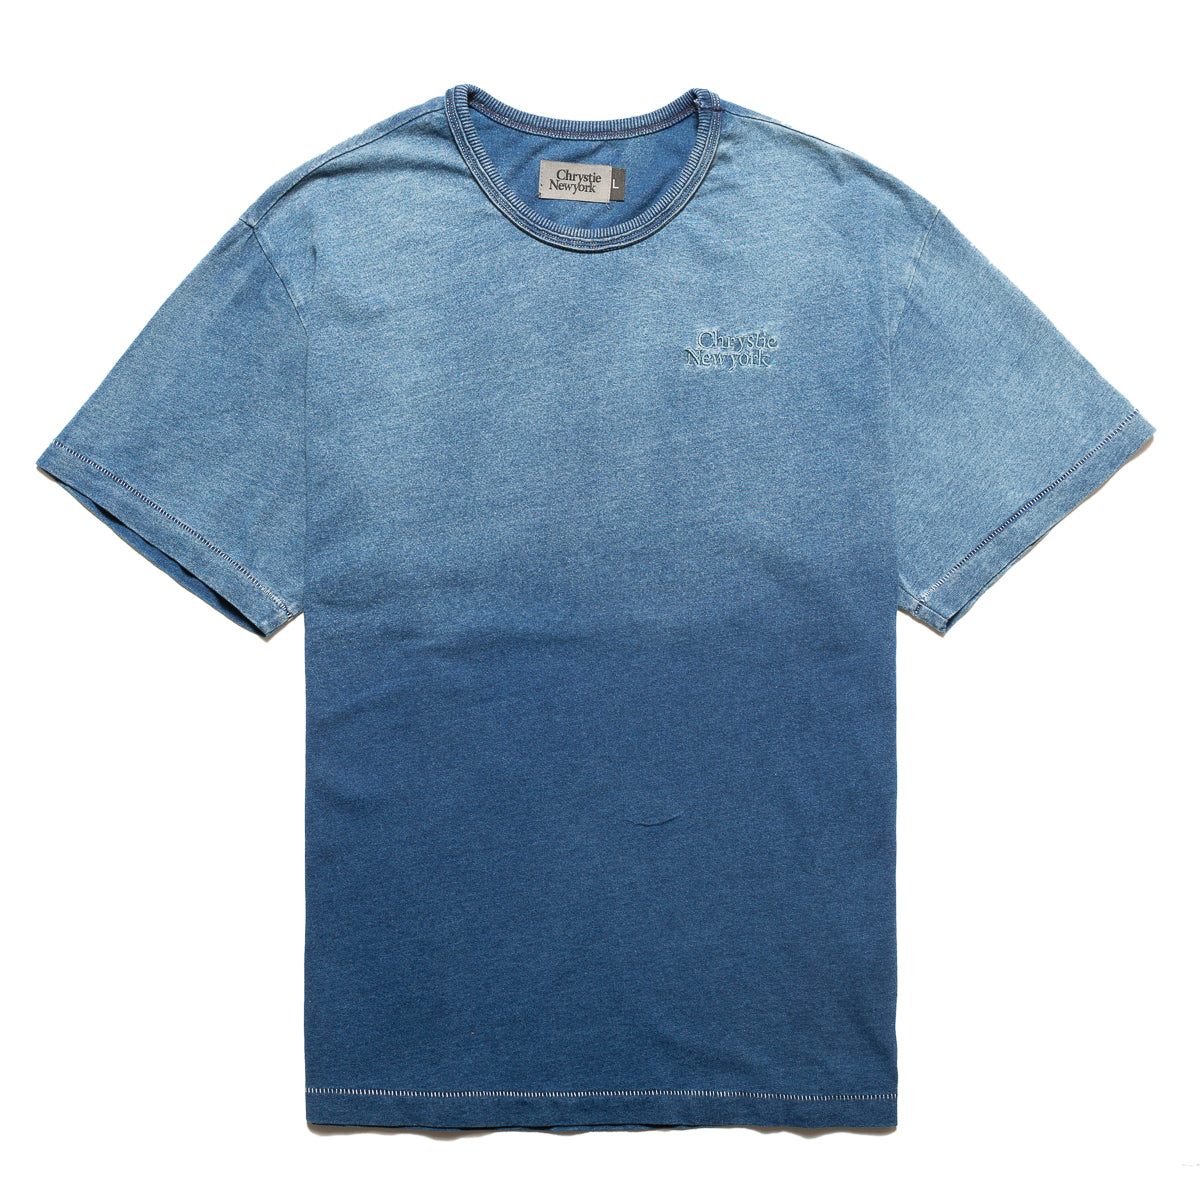 Load image into Gallery viewer, Indigo dye Classic logo T-shirt